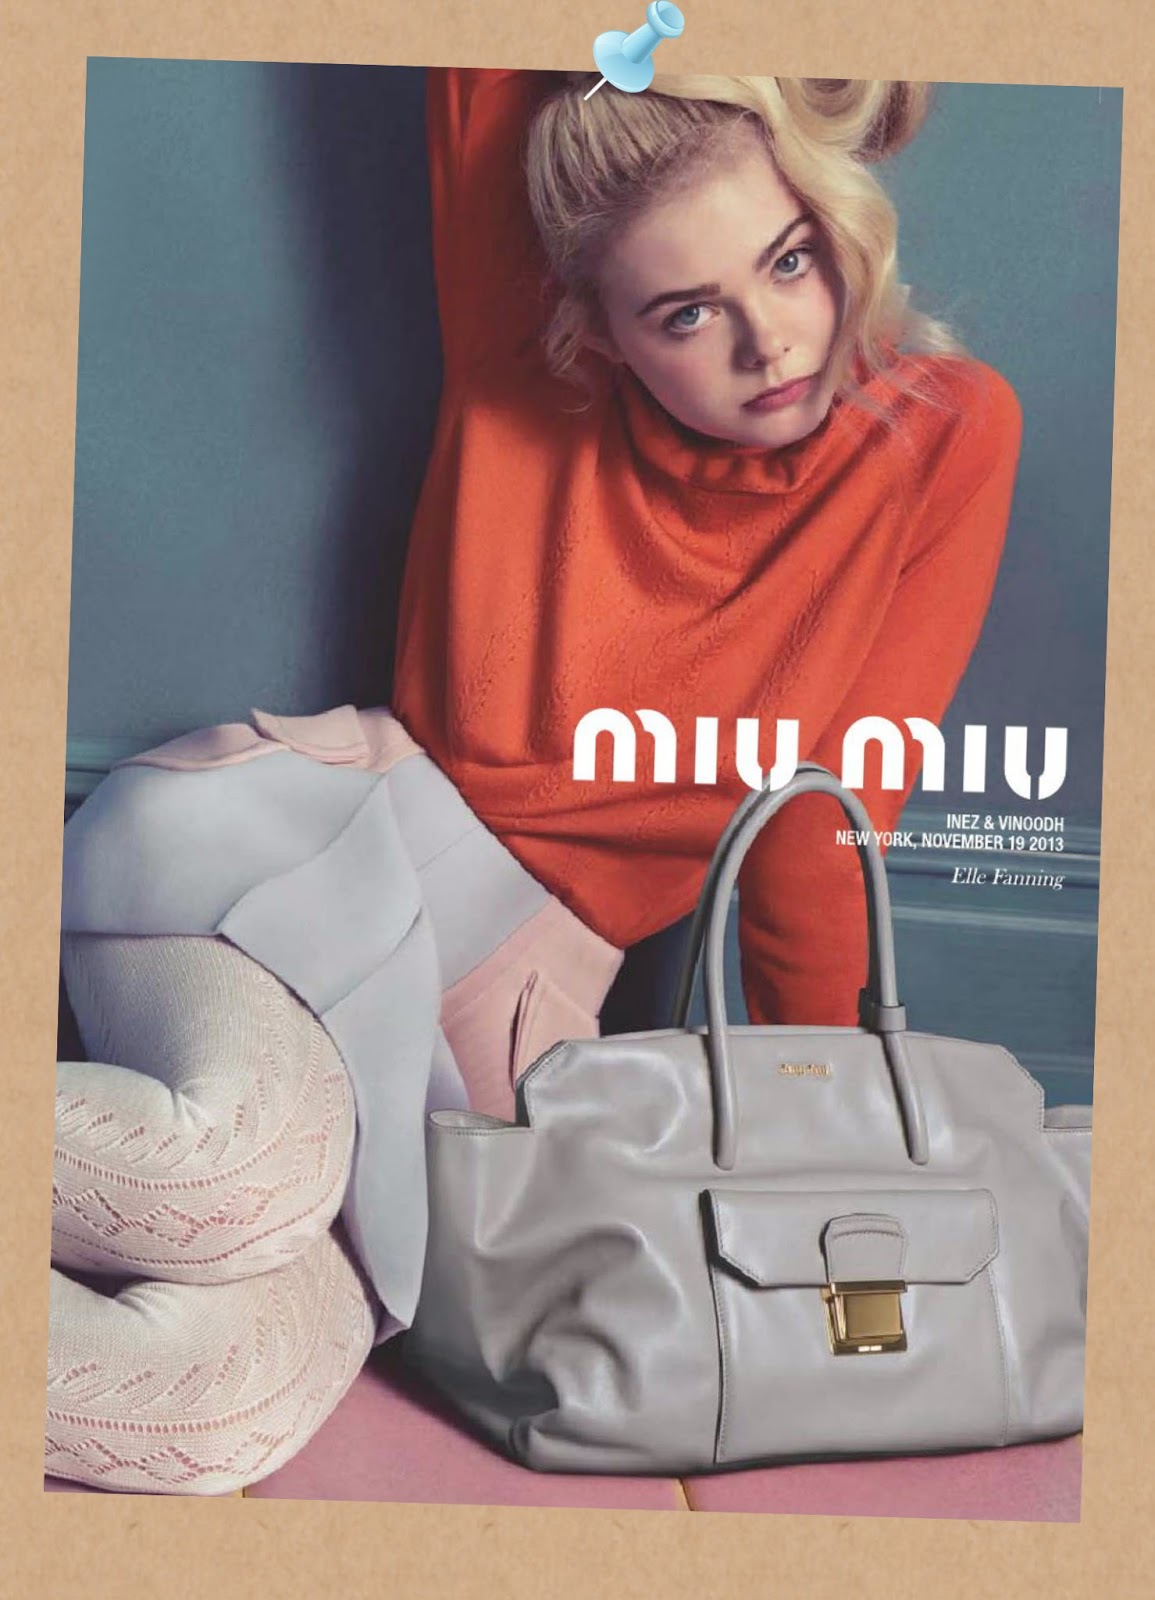 photo_miumiu-grey-bag-fanning